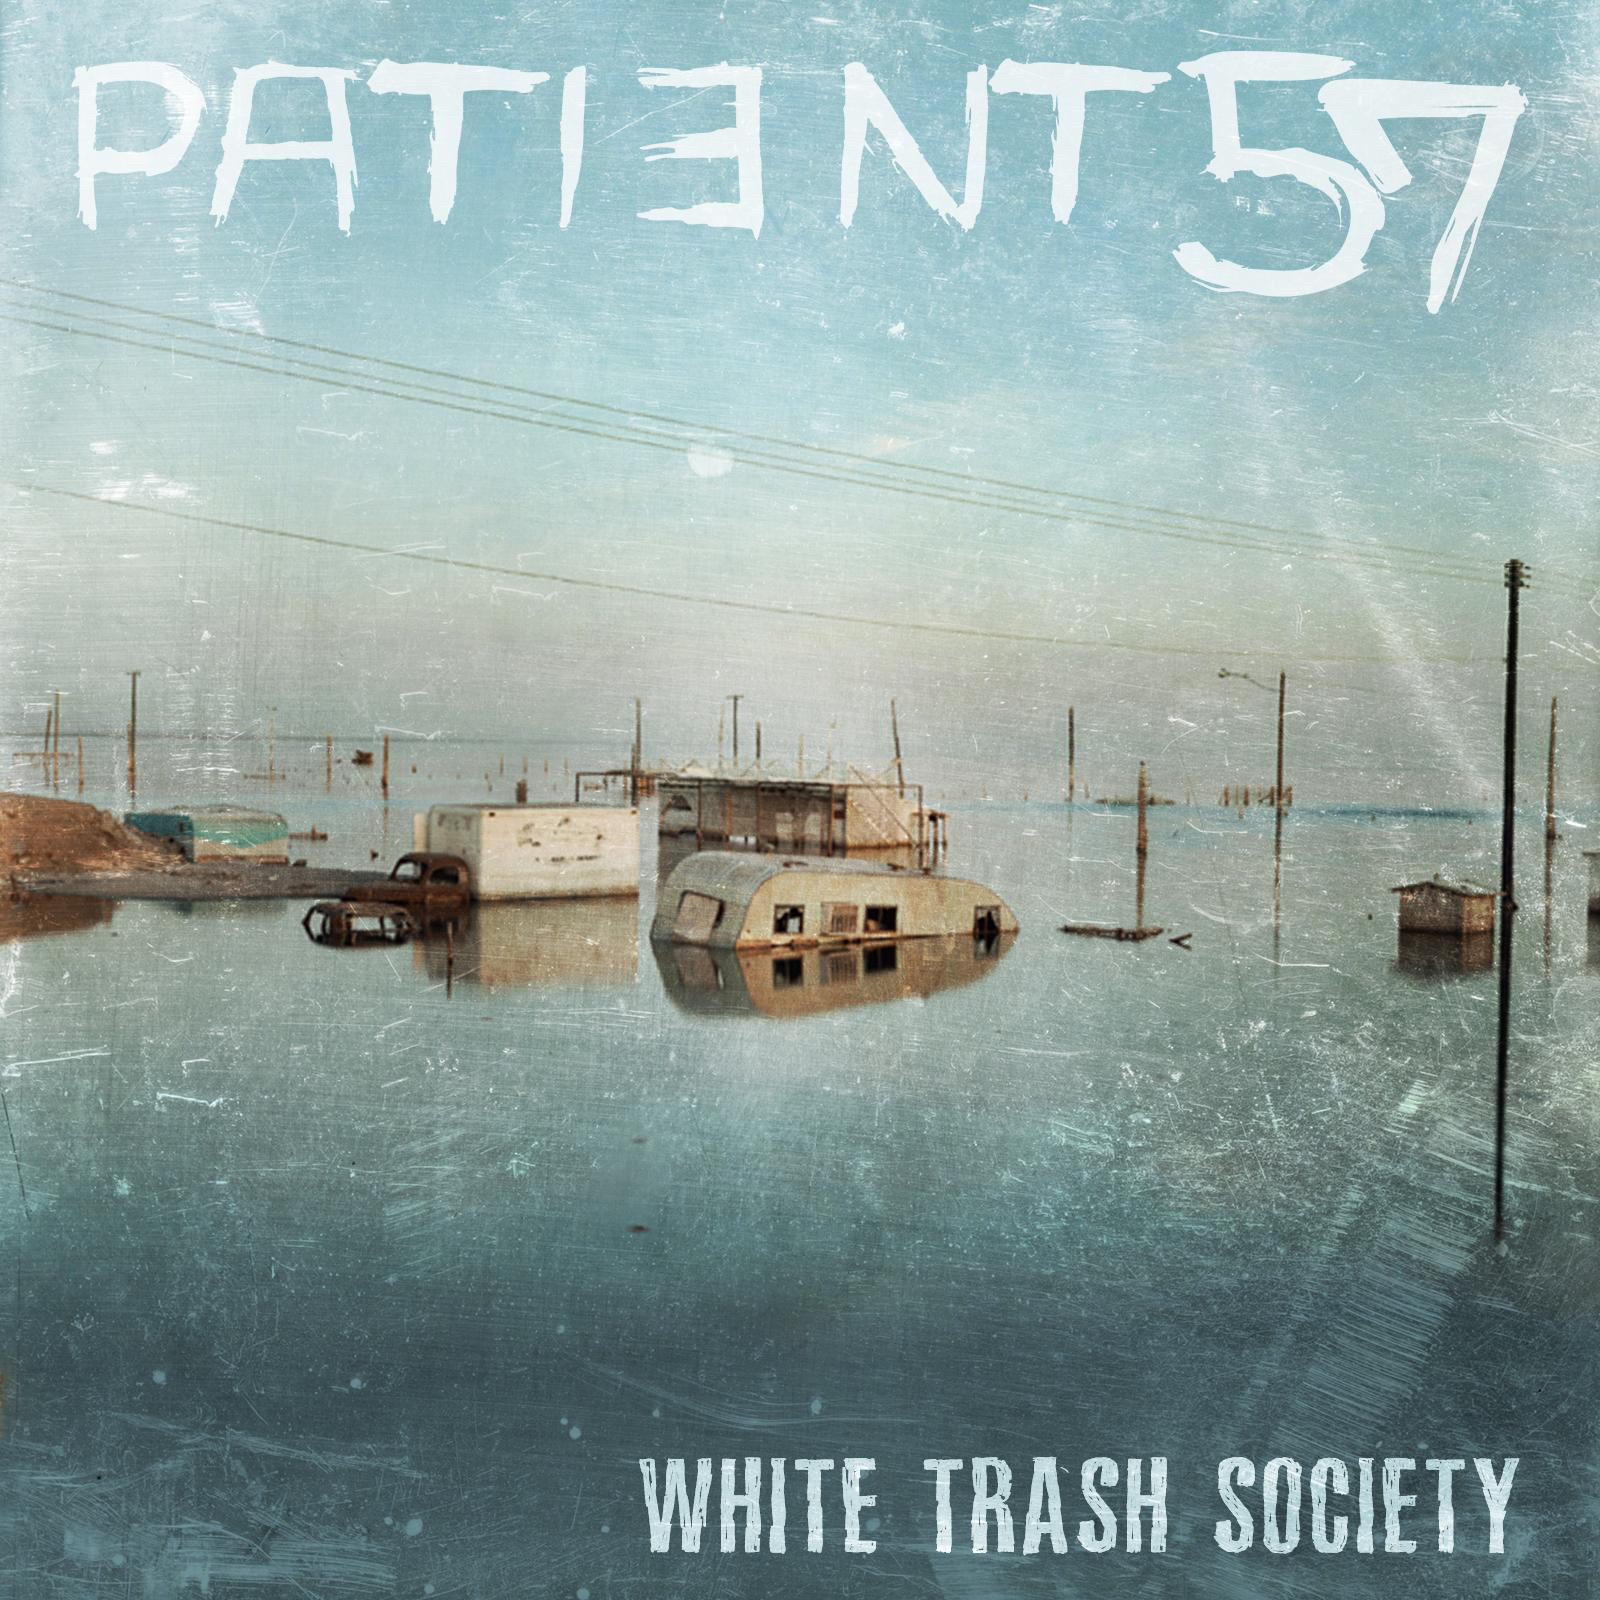 Patient 57 - White Trash Society [single] (2015)